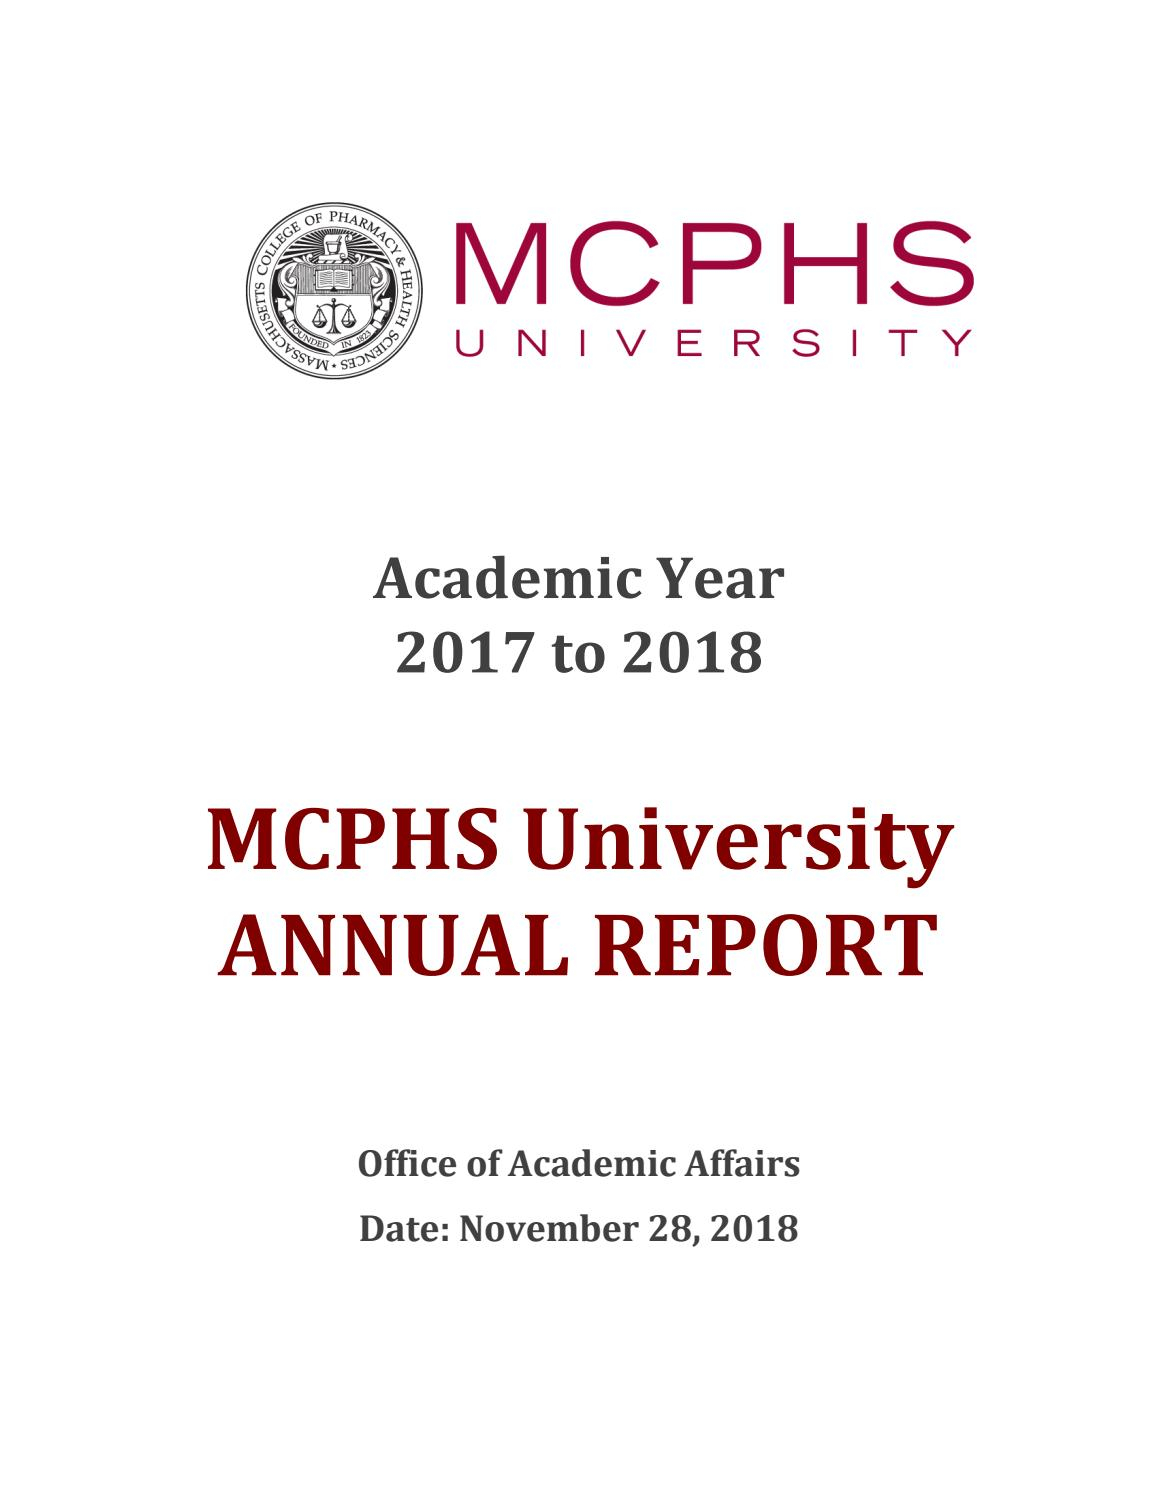 Mcphs University Annual Reportmassachusetts College Of Throughout Orange County Convention Center 2021 2020 Pdf